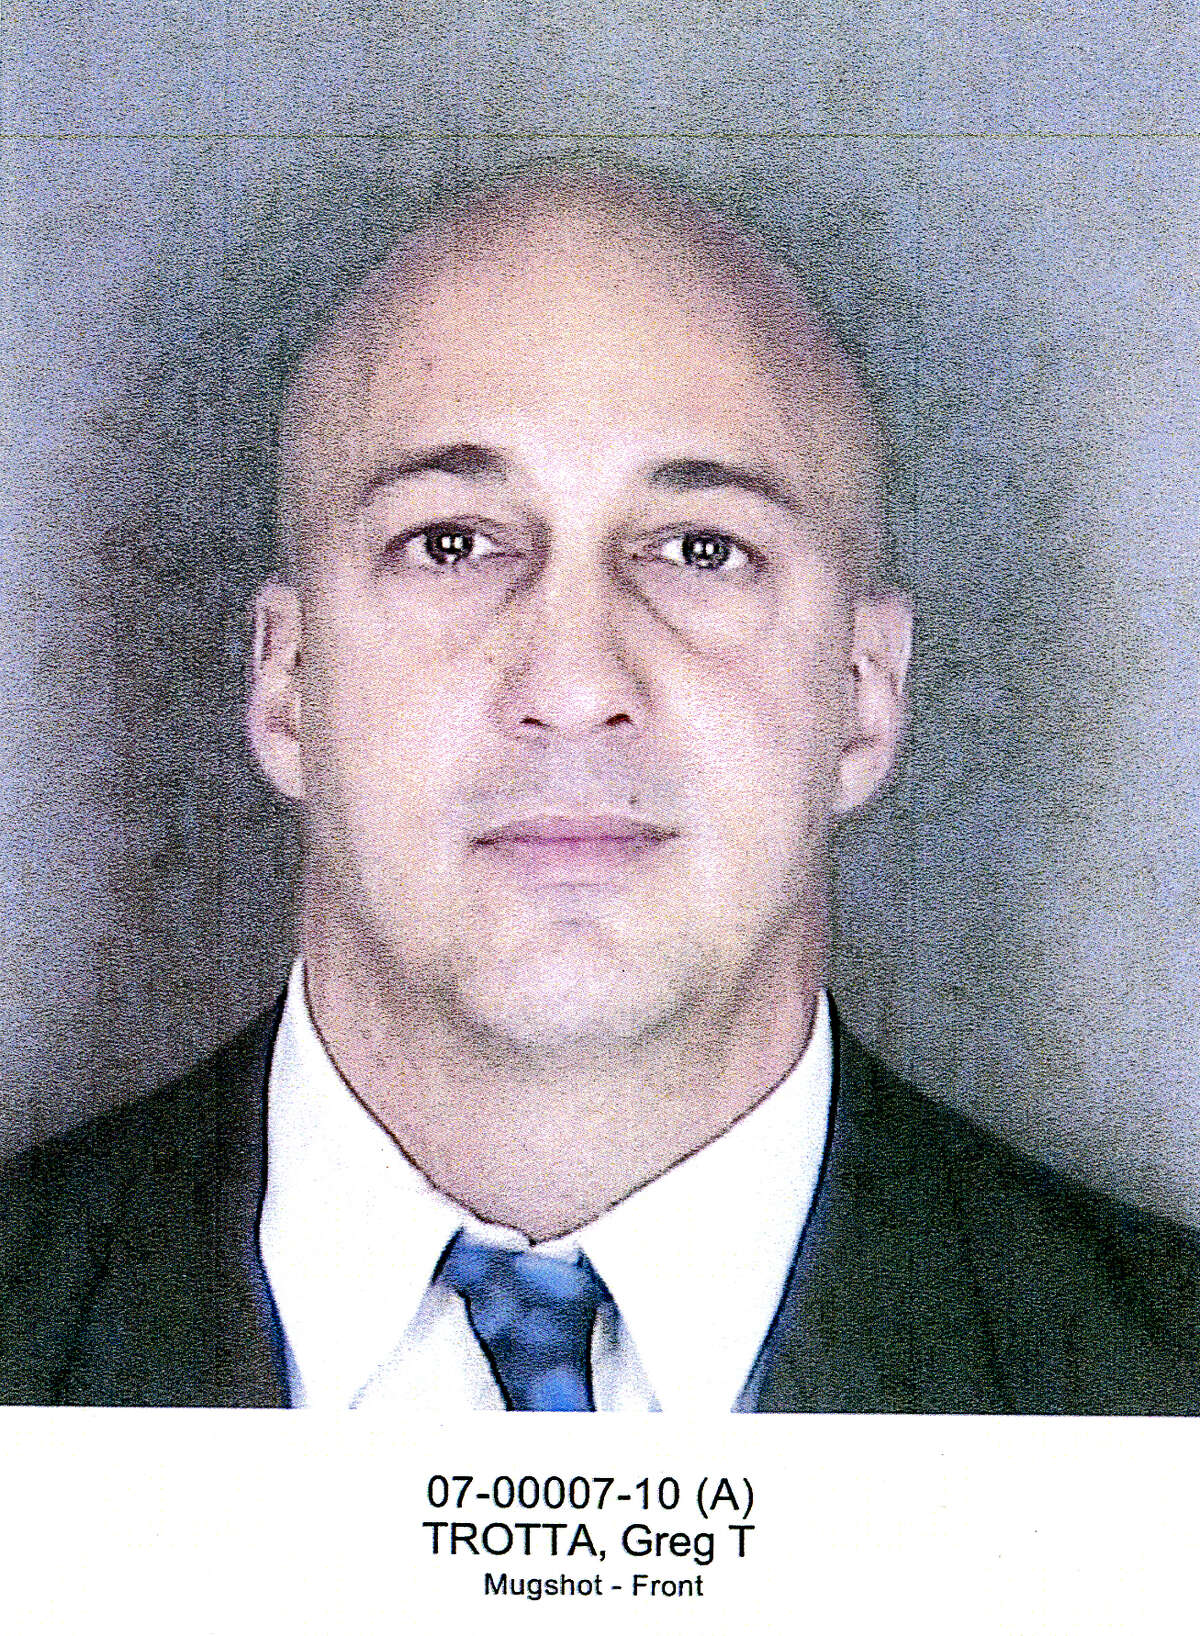 Greg T. Trotta of Florida had pleaded guilty in Albany to criminal drug diversion, a felony, in connection with an investigation of Orlando's Signature Compounding Pharmacy.